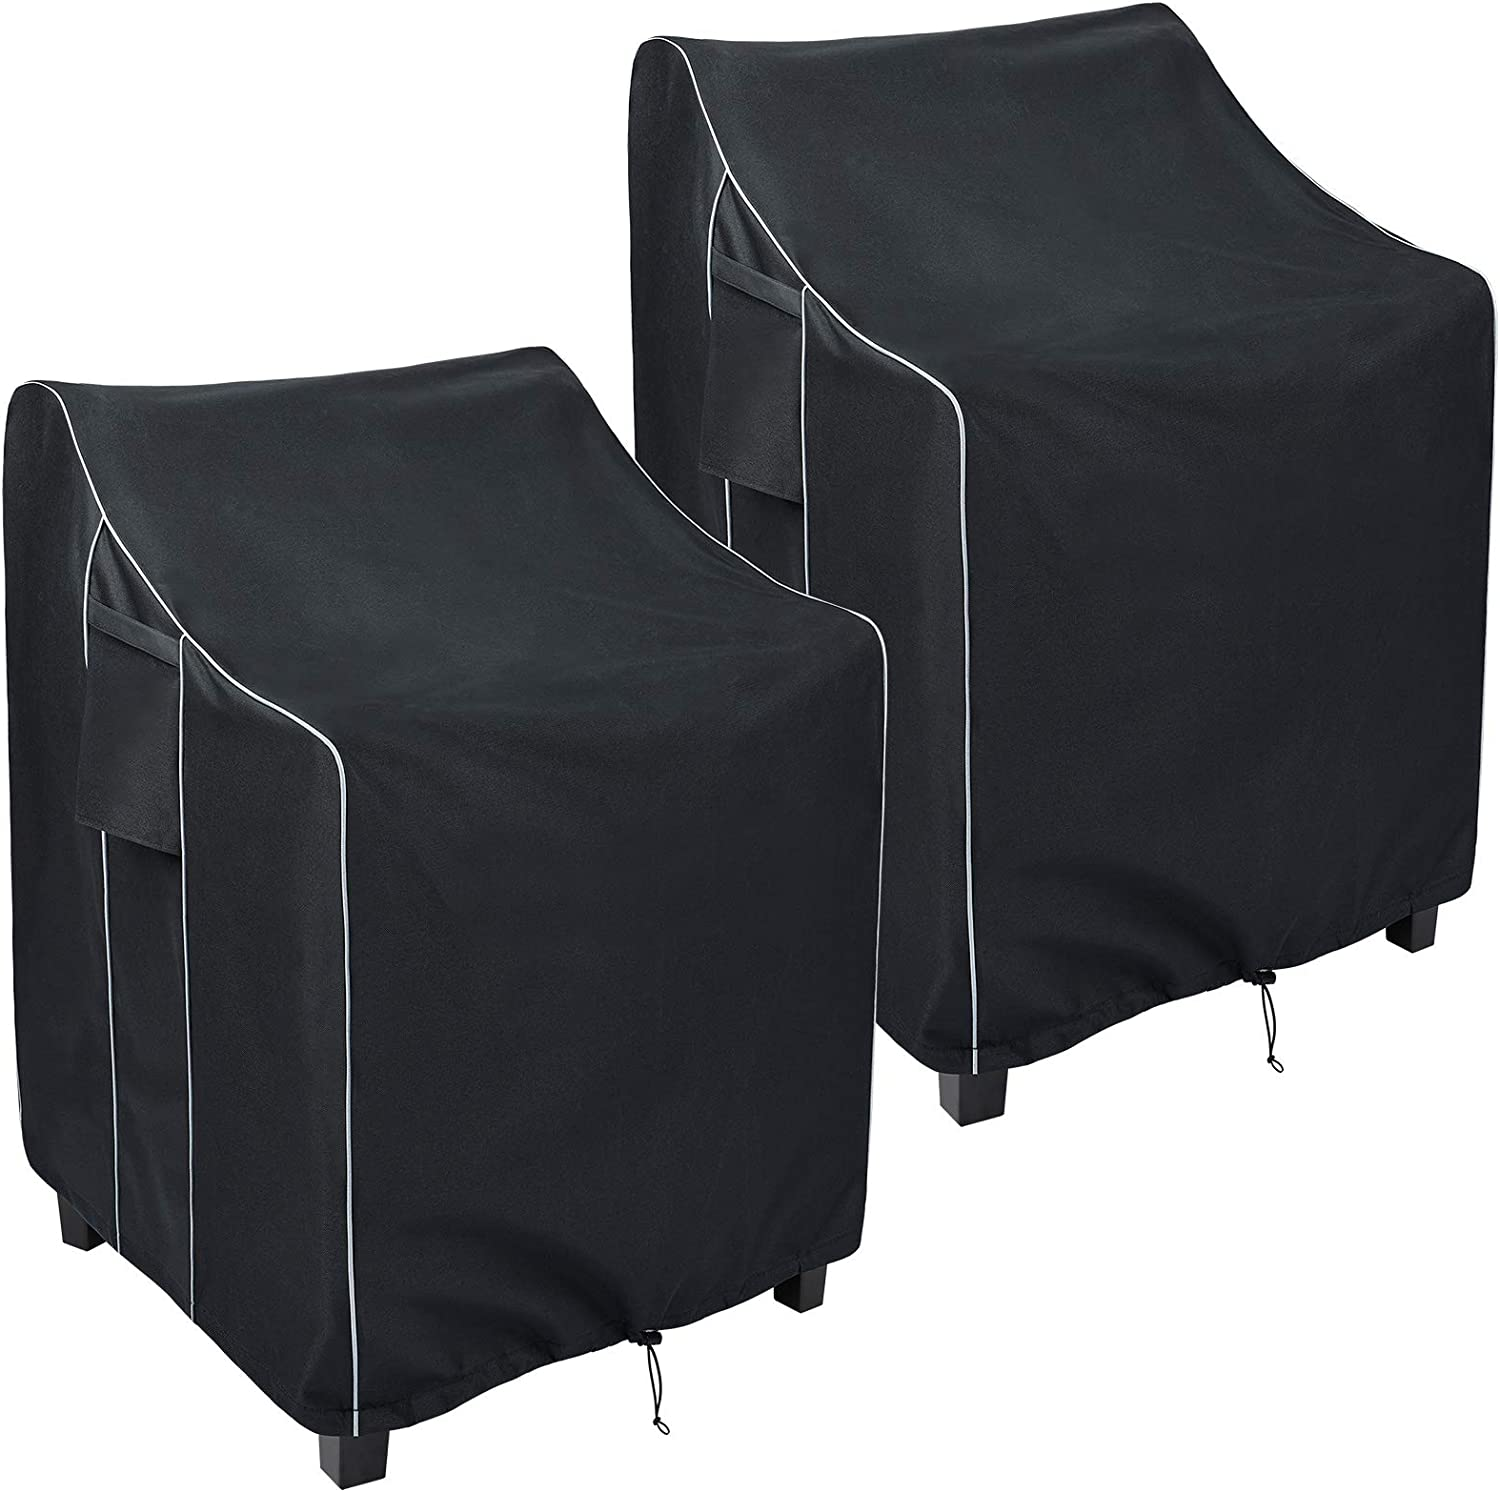 FORSPARK Patio Stackable Chair Covers Waterproof, Heavy Duty Outdoor Furniture Chair Covers, Fits up to 36 x 28 x 47 inches (W x D x H) 2 Pack